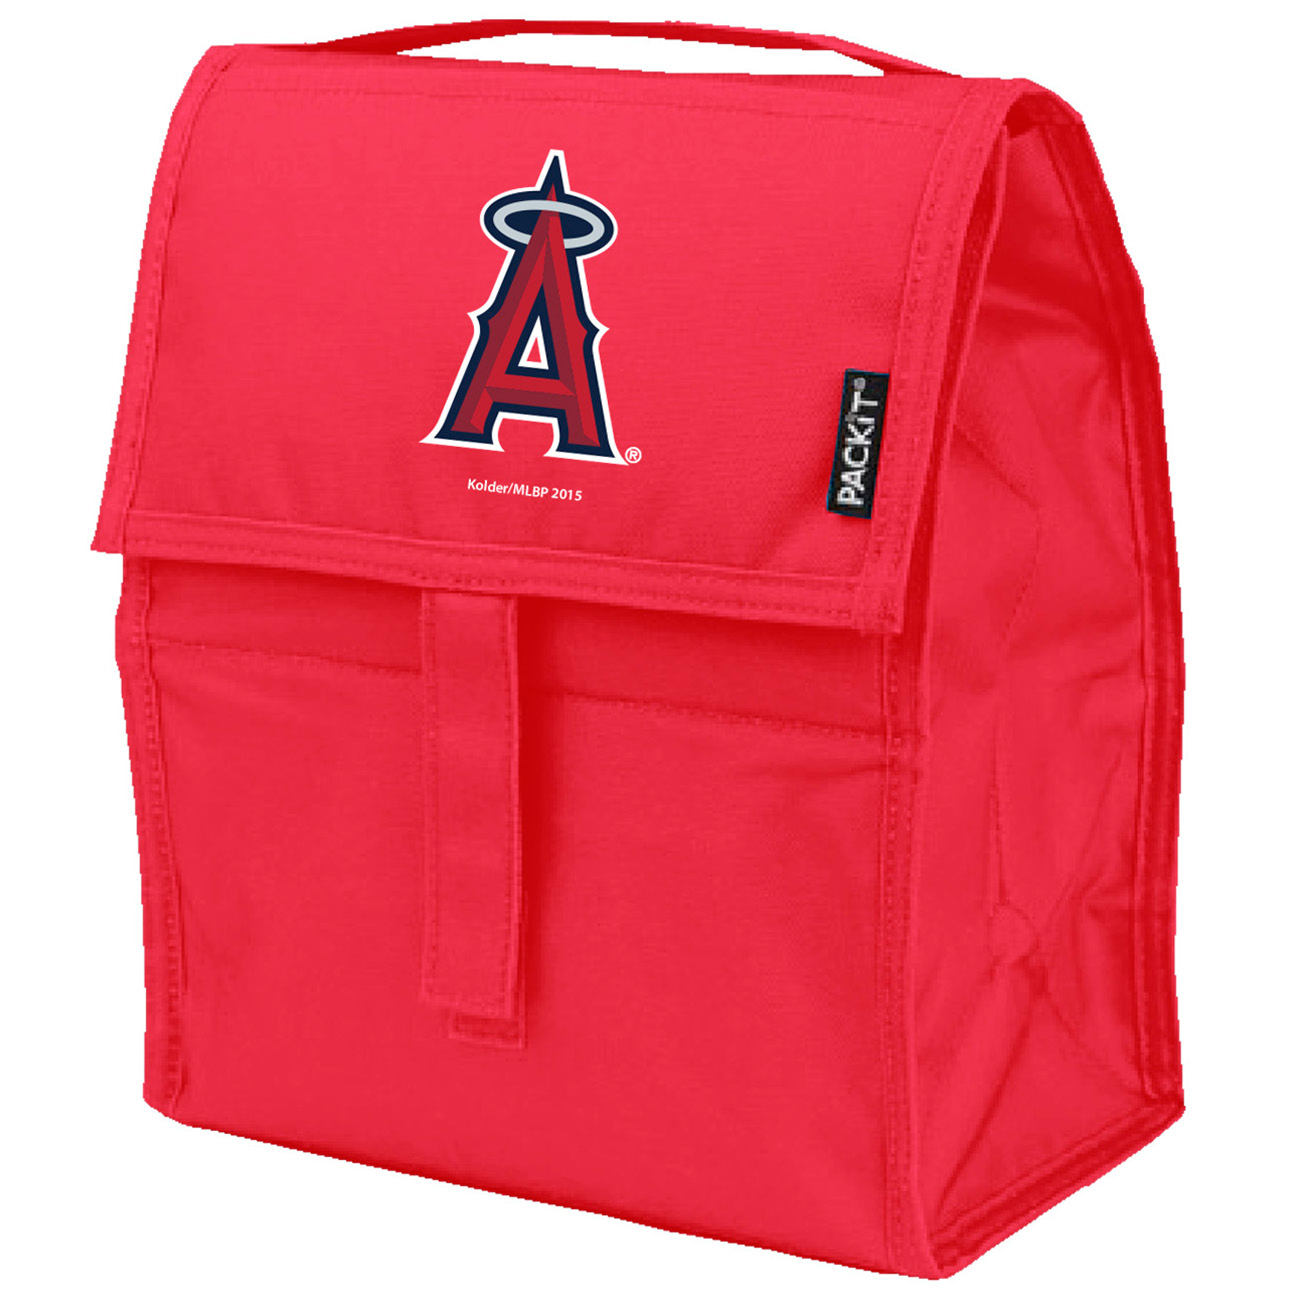 Los Angeles Angels PackIt Lunch Box - No Size